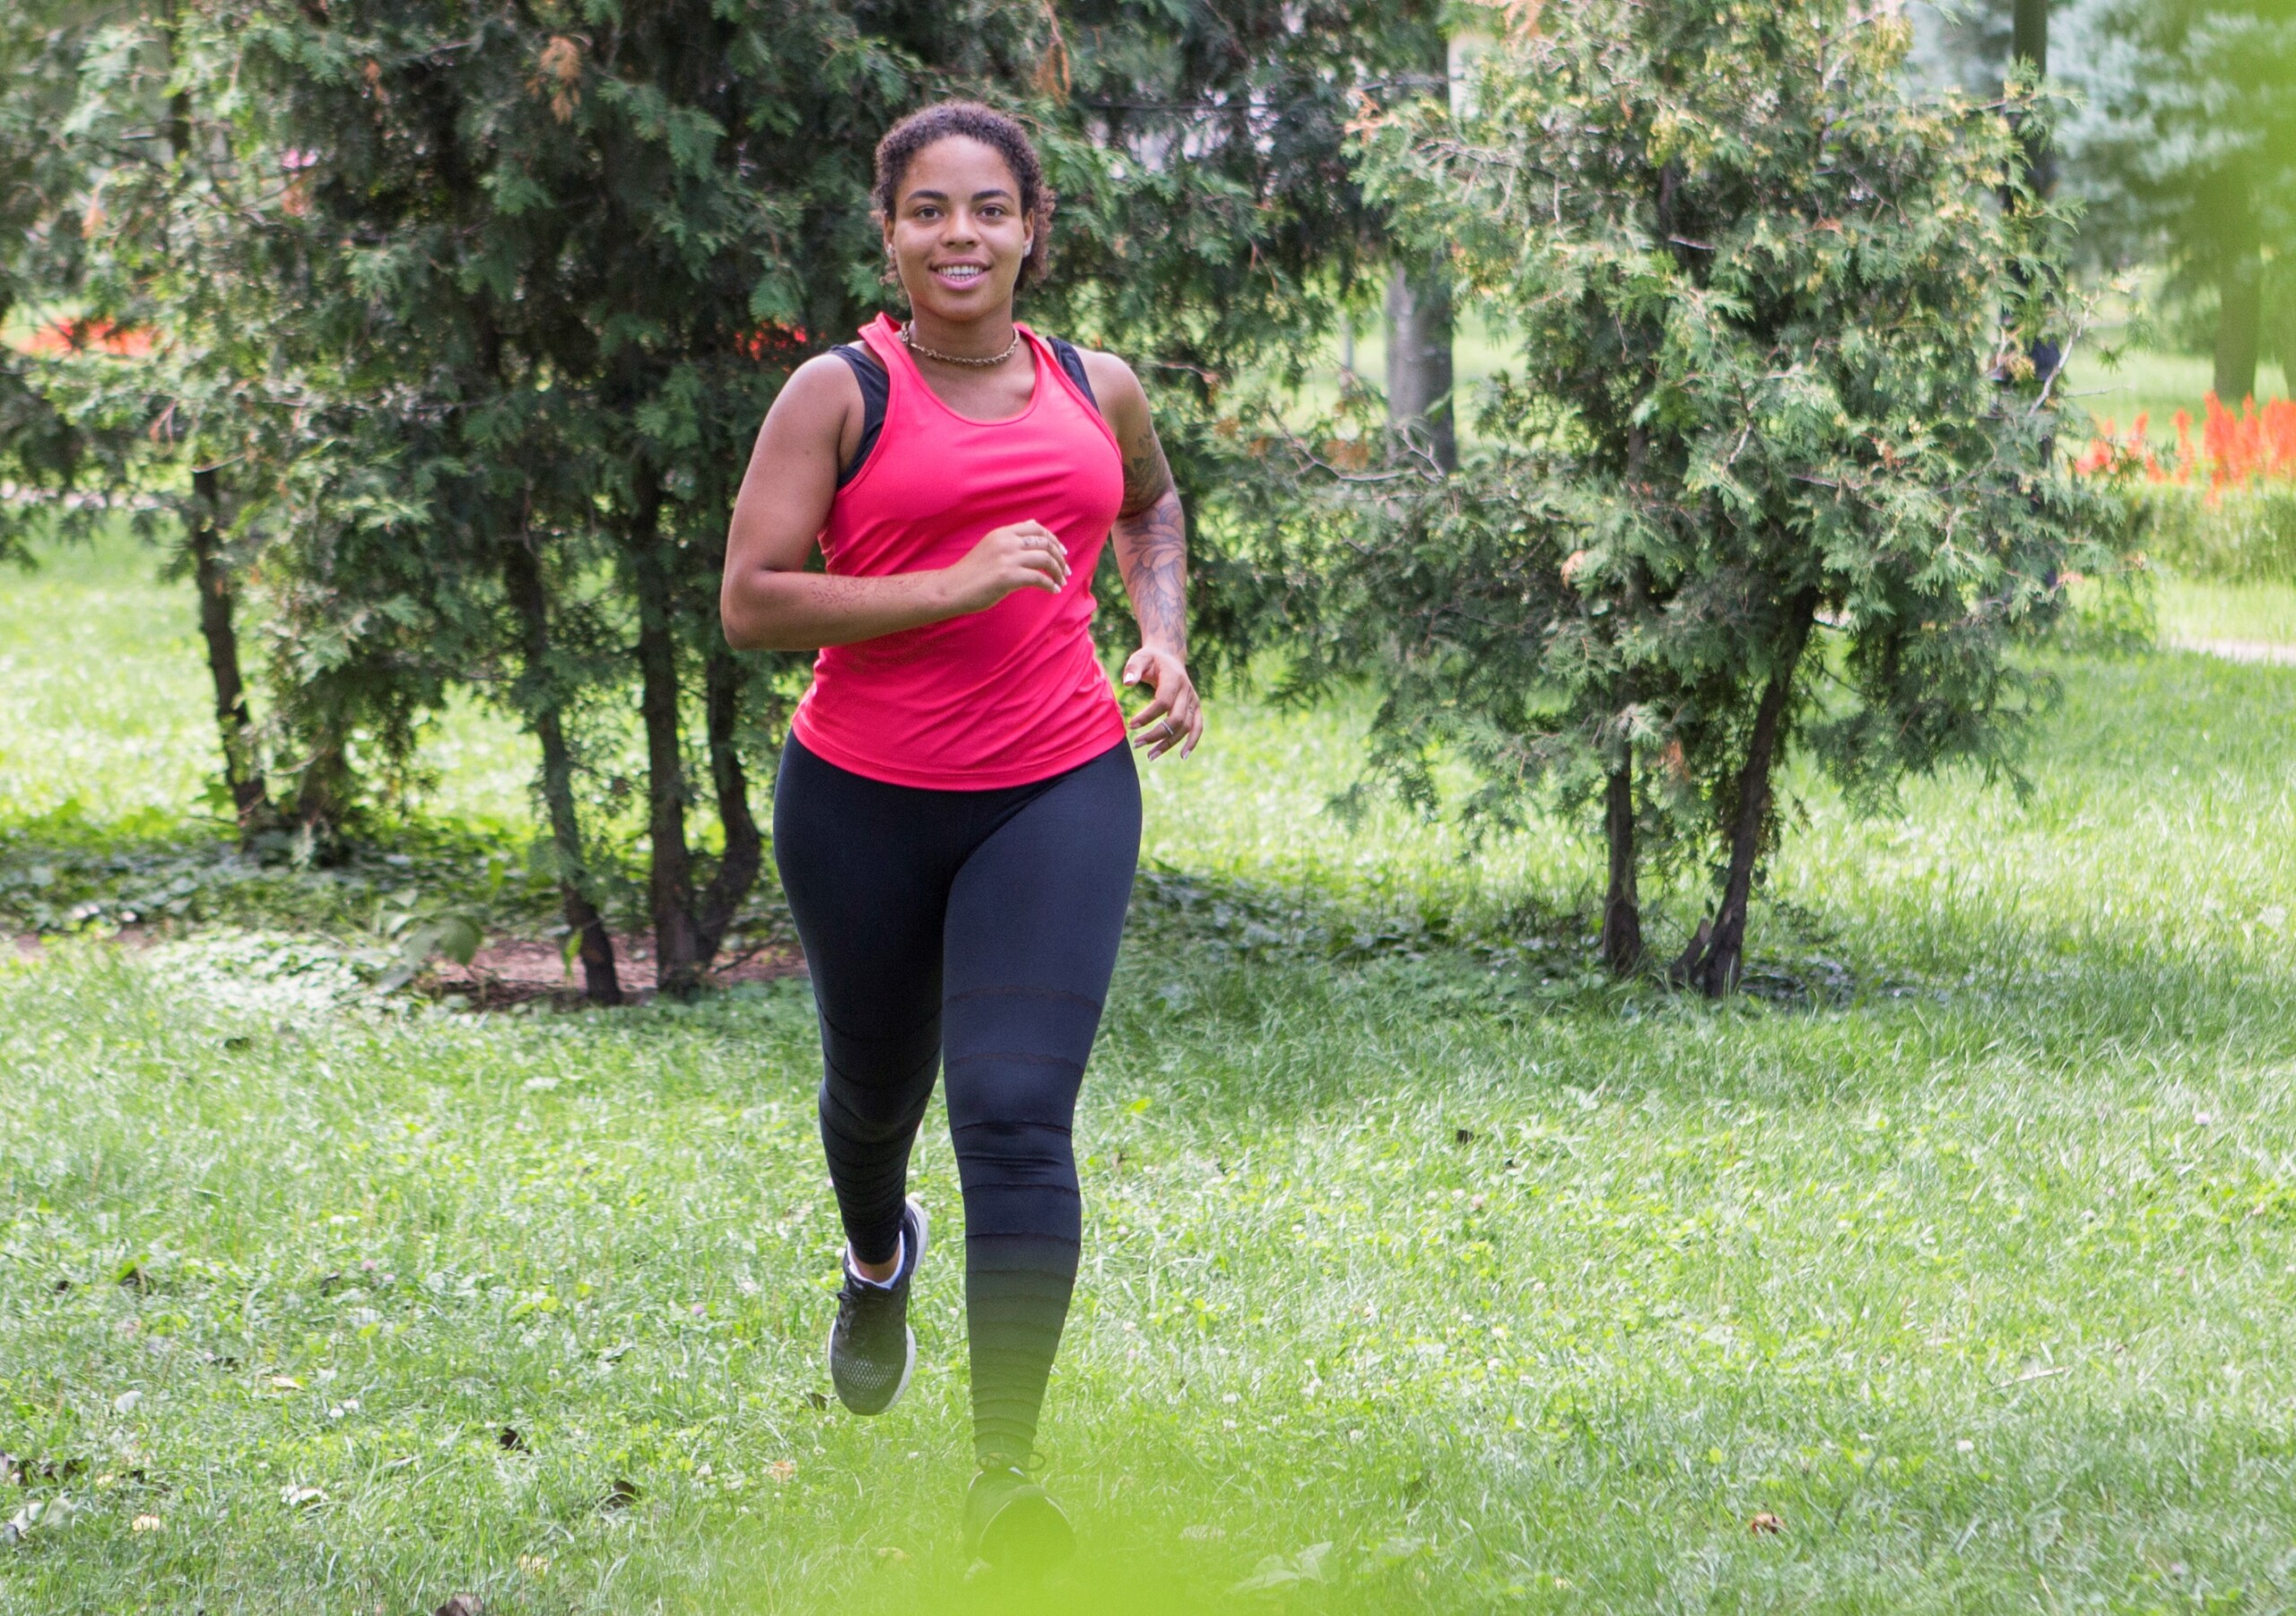 What Should People with Diabetes Eat After Cardio Exercise?